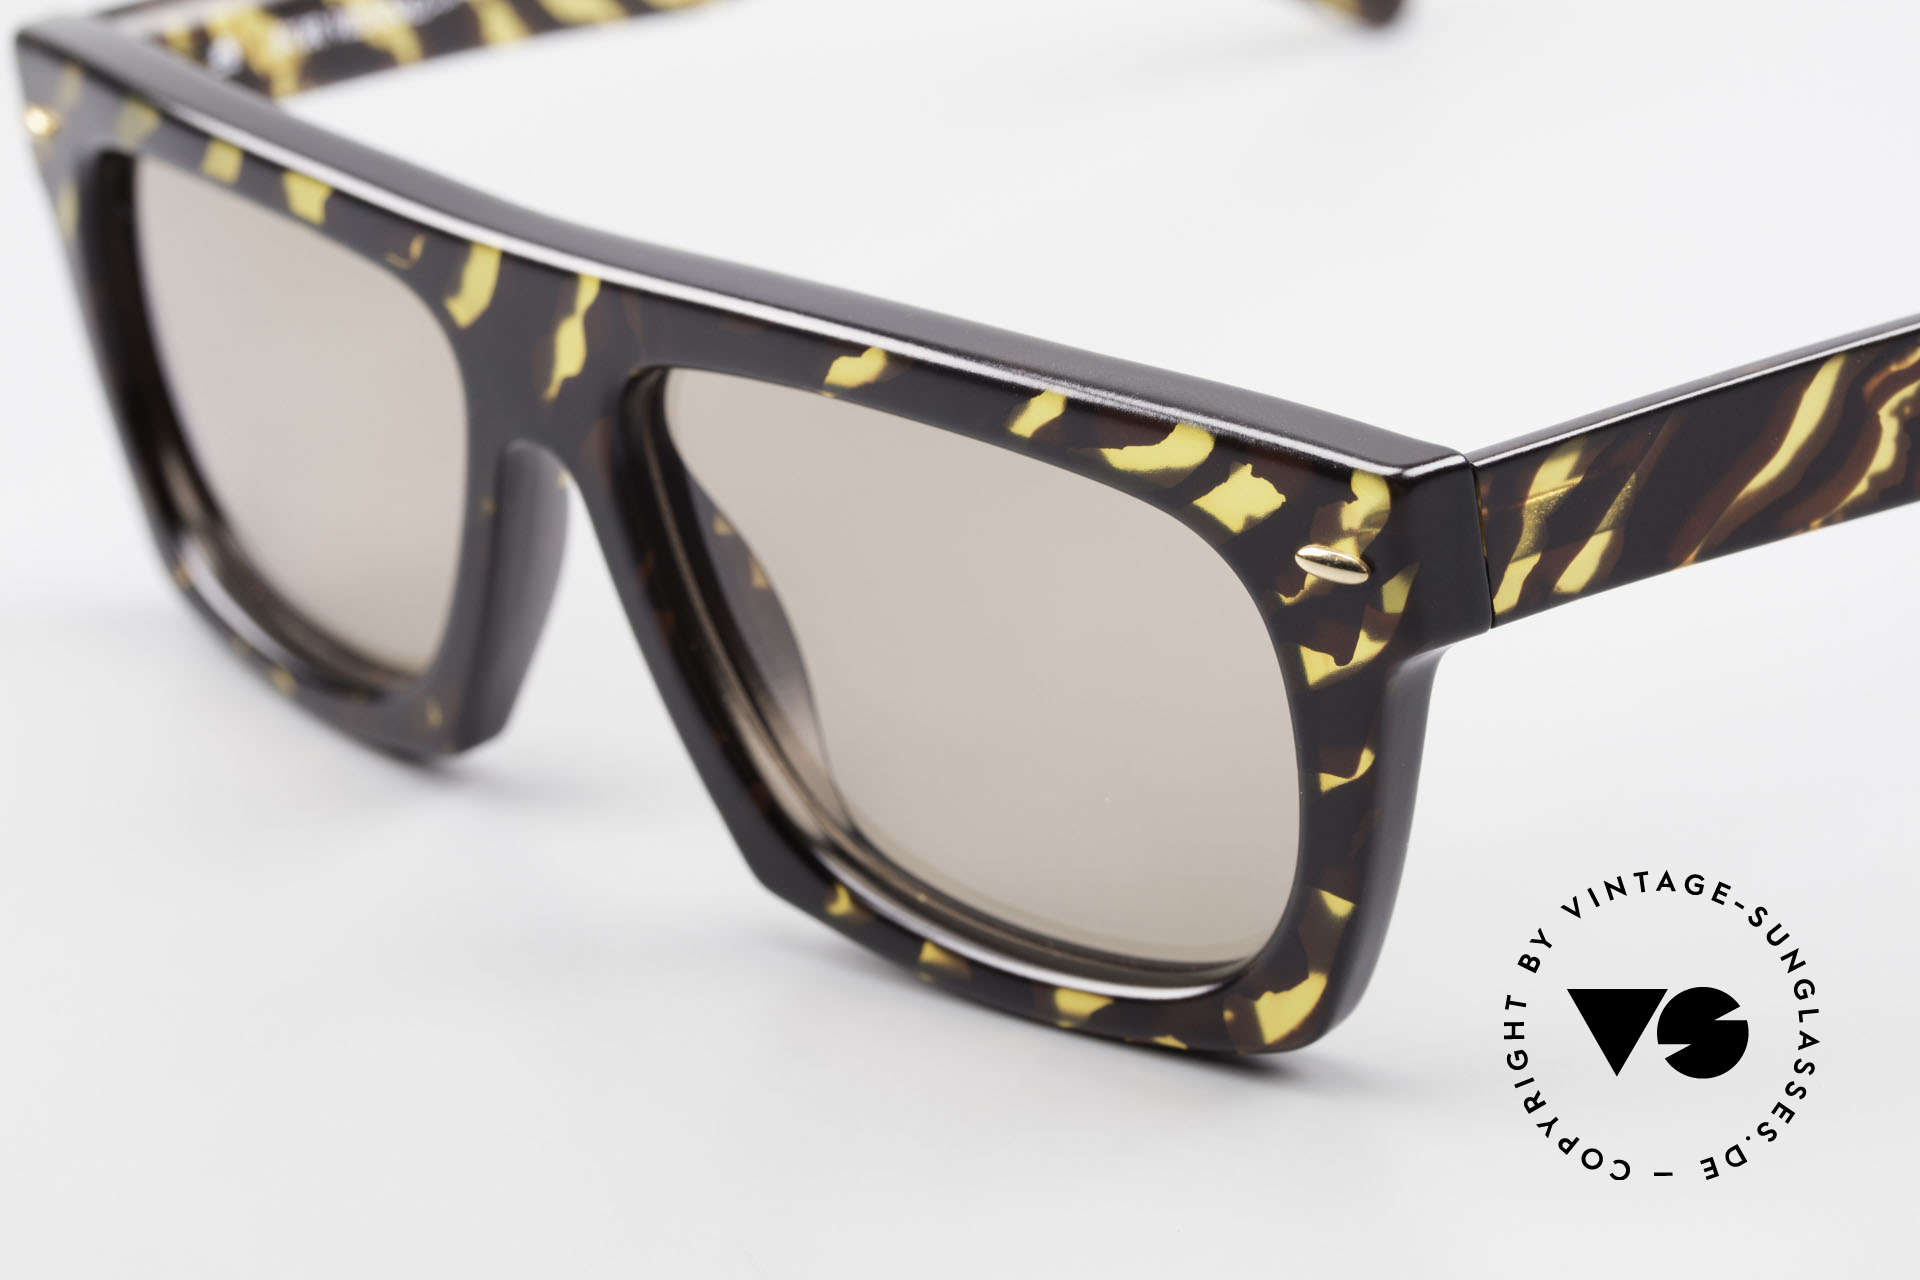 Paloma Picasso 1460 No Retro Shades 90's Original, the incredible Optyl material does not seem to age, Made for Men and Women